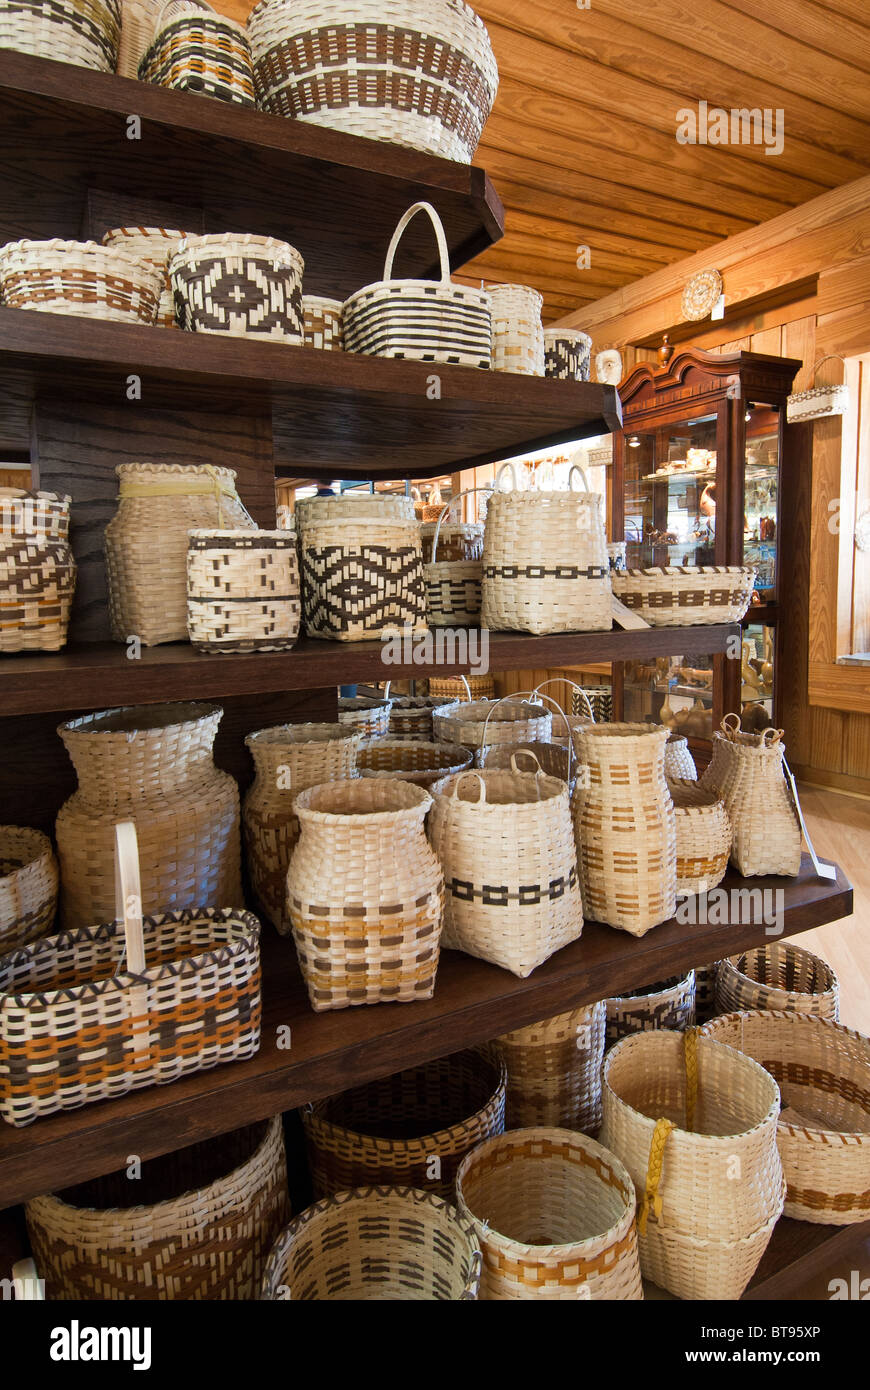 Cherokee Indians best known handicrafts are their river cane, white oak, maple and honeysuckle baskets, Cherokee, - Stock Image